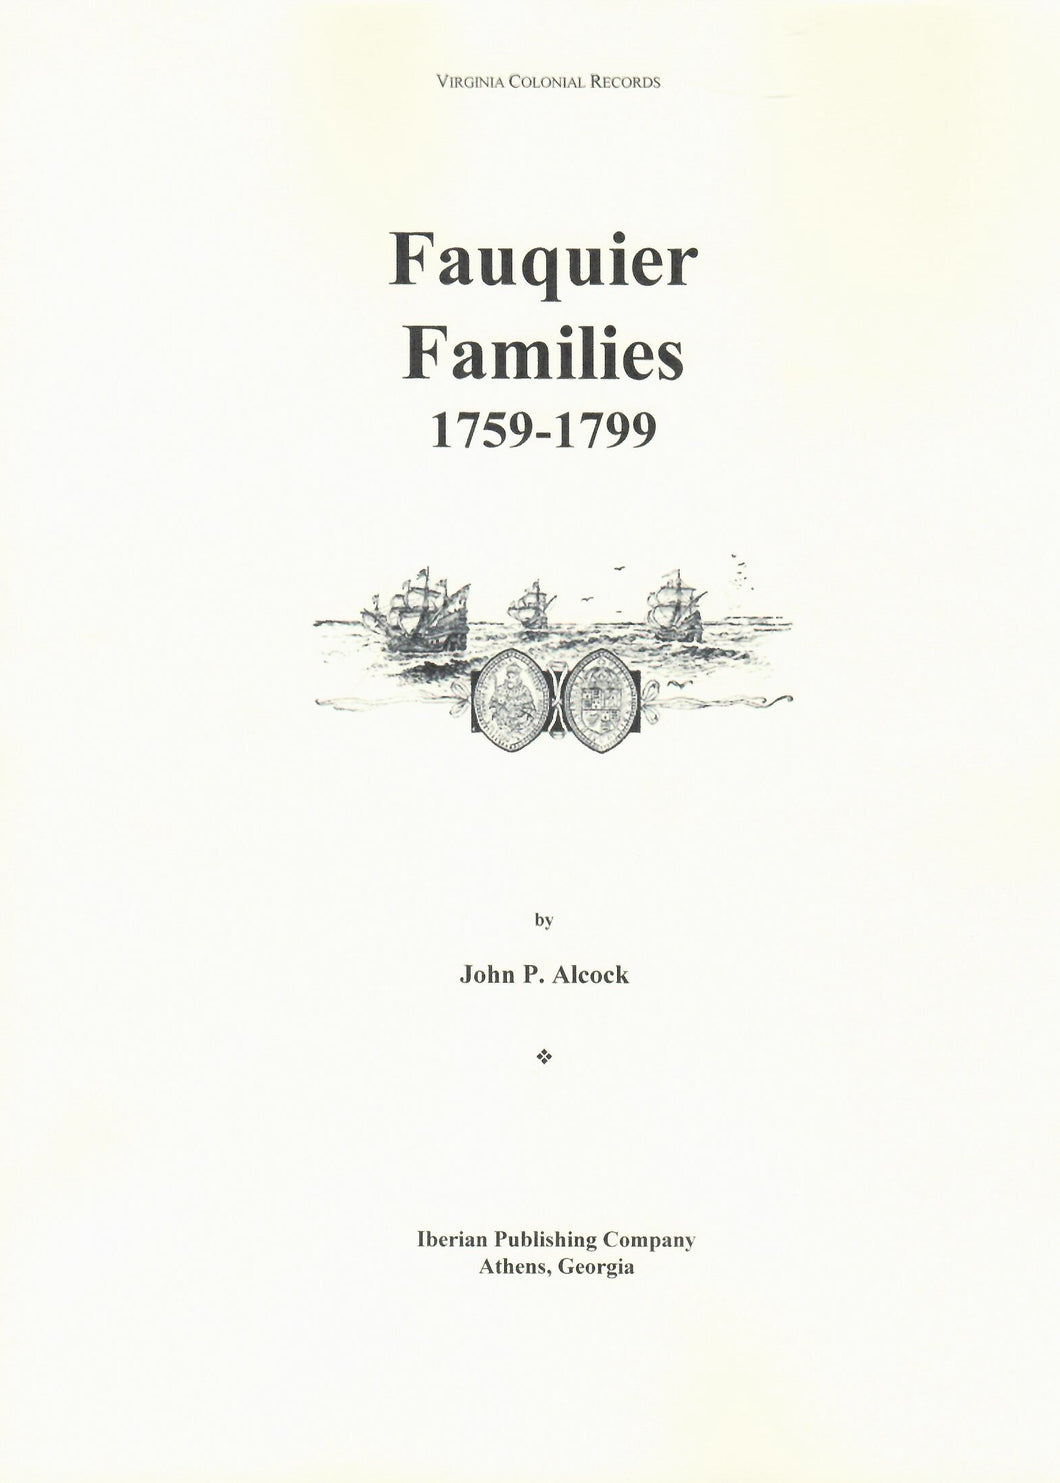 Fauquier Families, 1759-1799: Comprehensive Indexed Abstracts of Tax and Tithable Lists, Marriage Bonds and Minute, Deed, and Will Books plus Other 18th Century Records of Fauquier County, Virginia